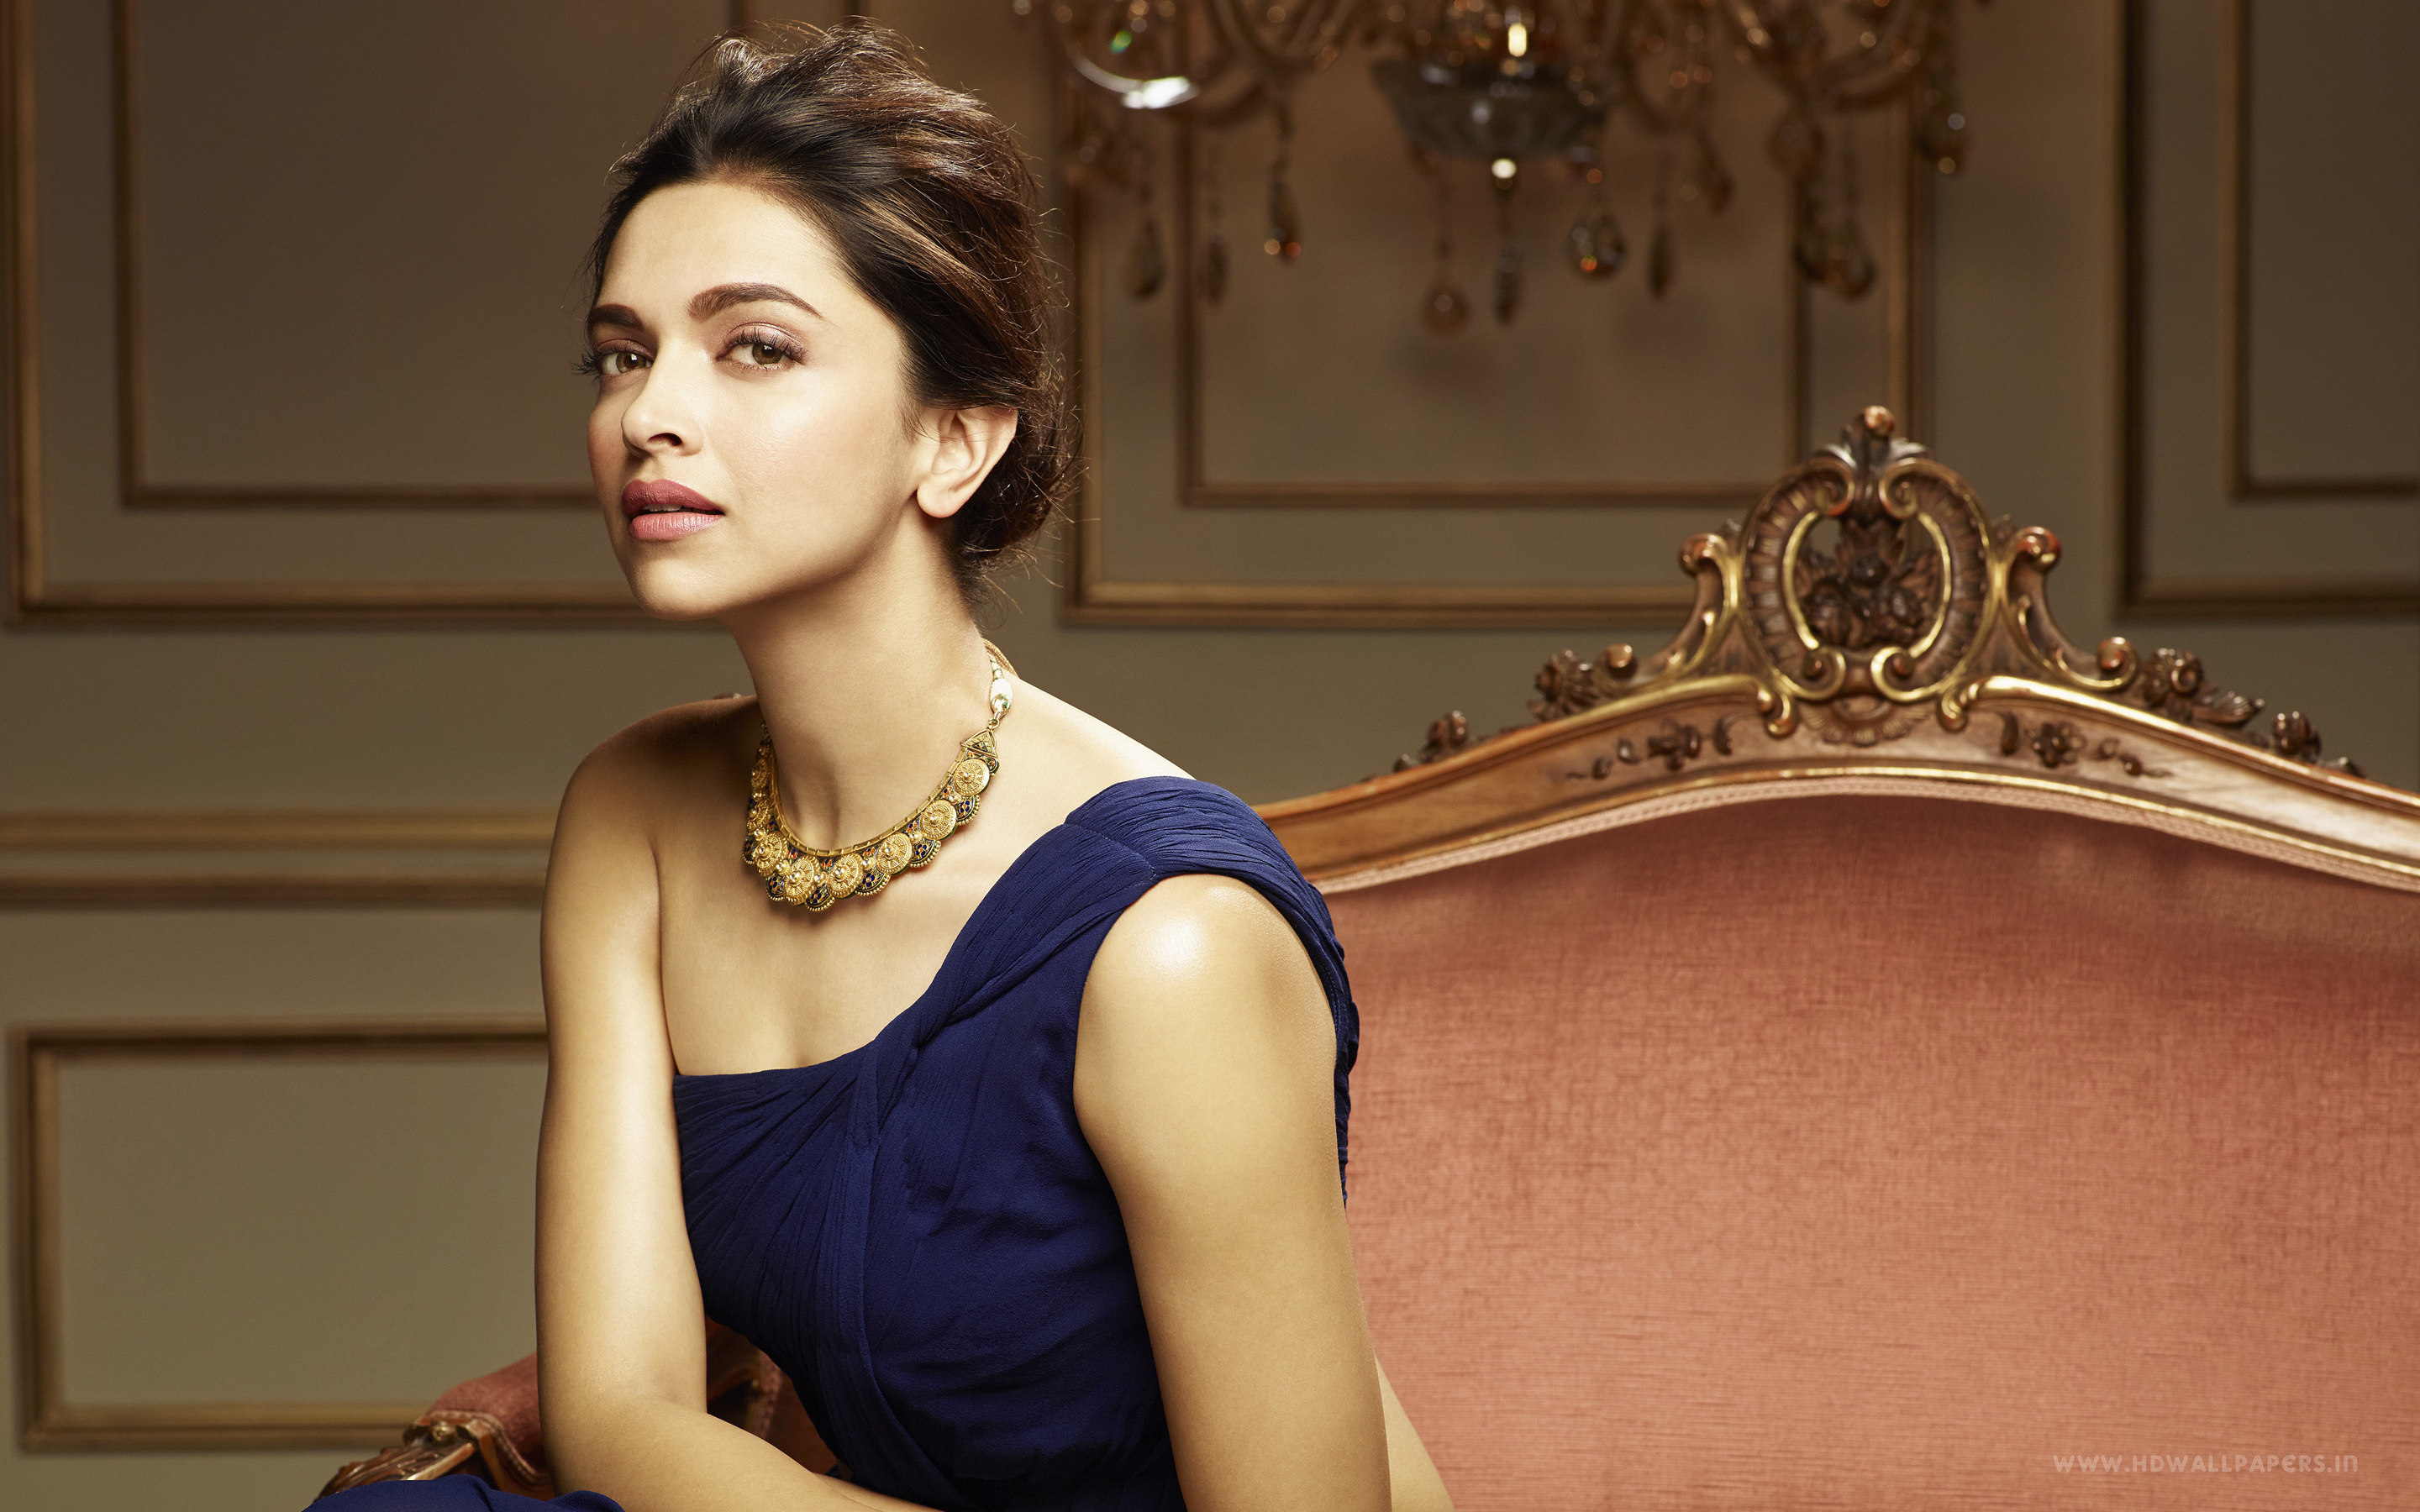 deepika padukone queen of expressions hd wallpapers - all hd wallpapers